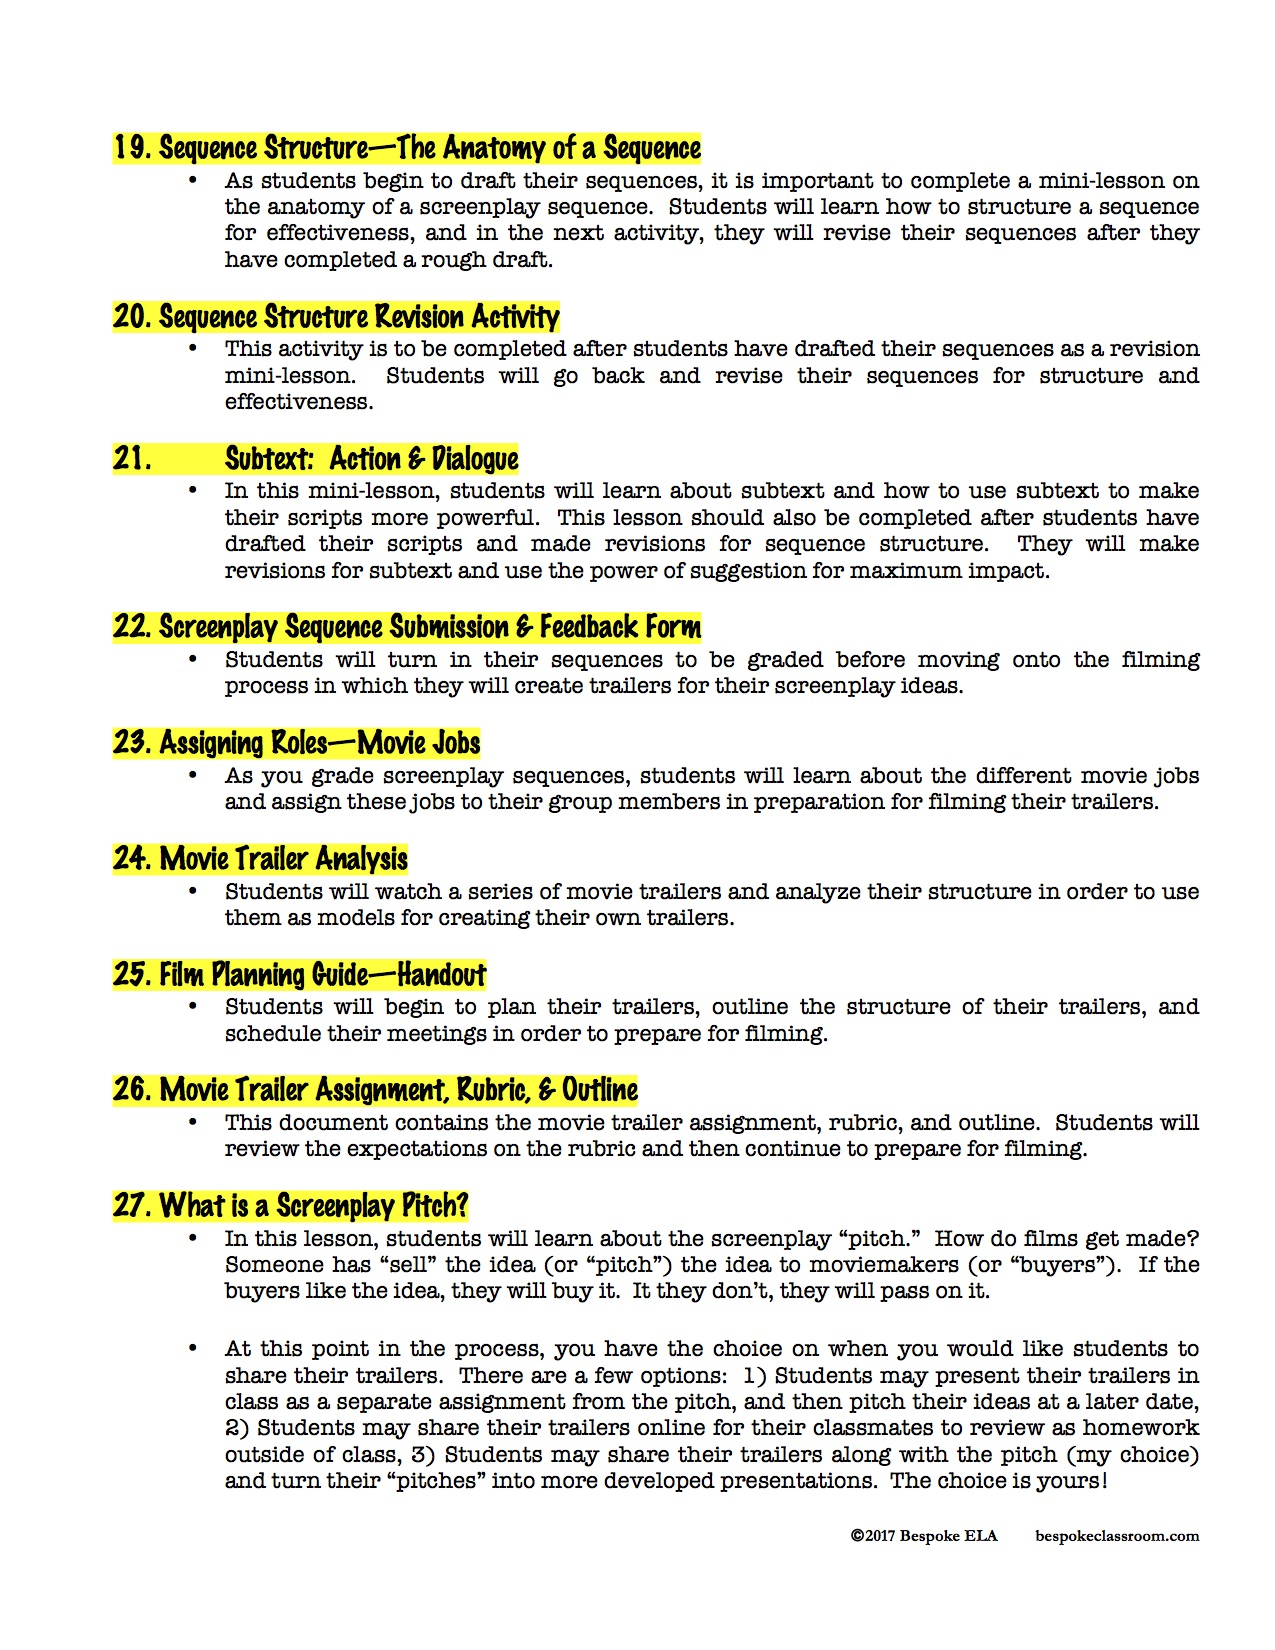 00 Table of Contents and Instructions-- Screenplay Unit by BESPOKE ELA 3.jpg